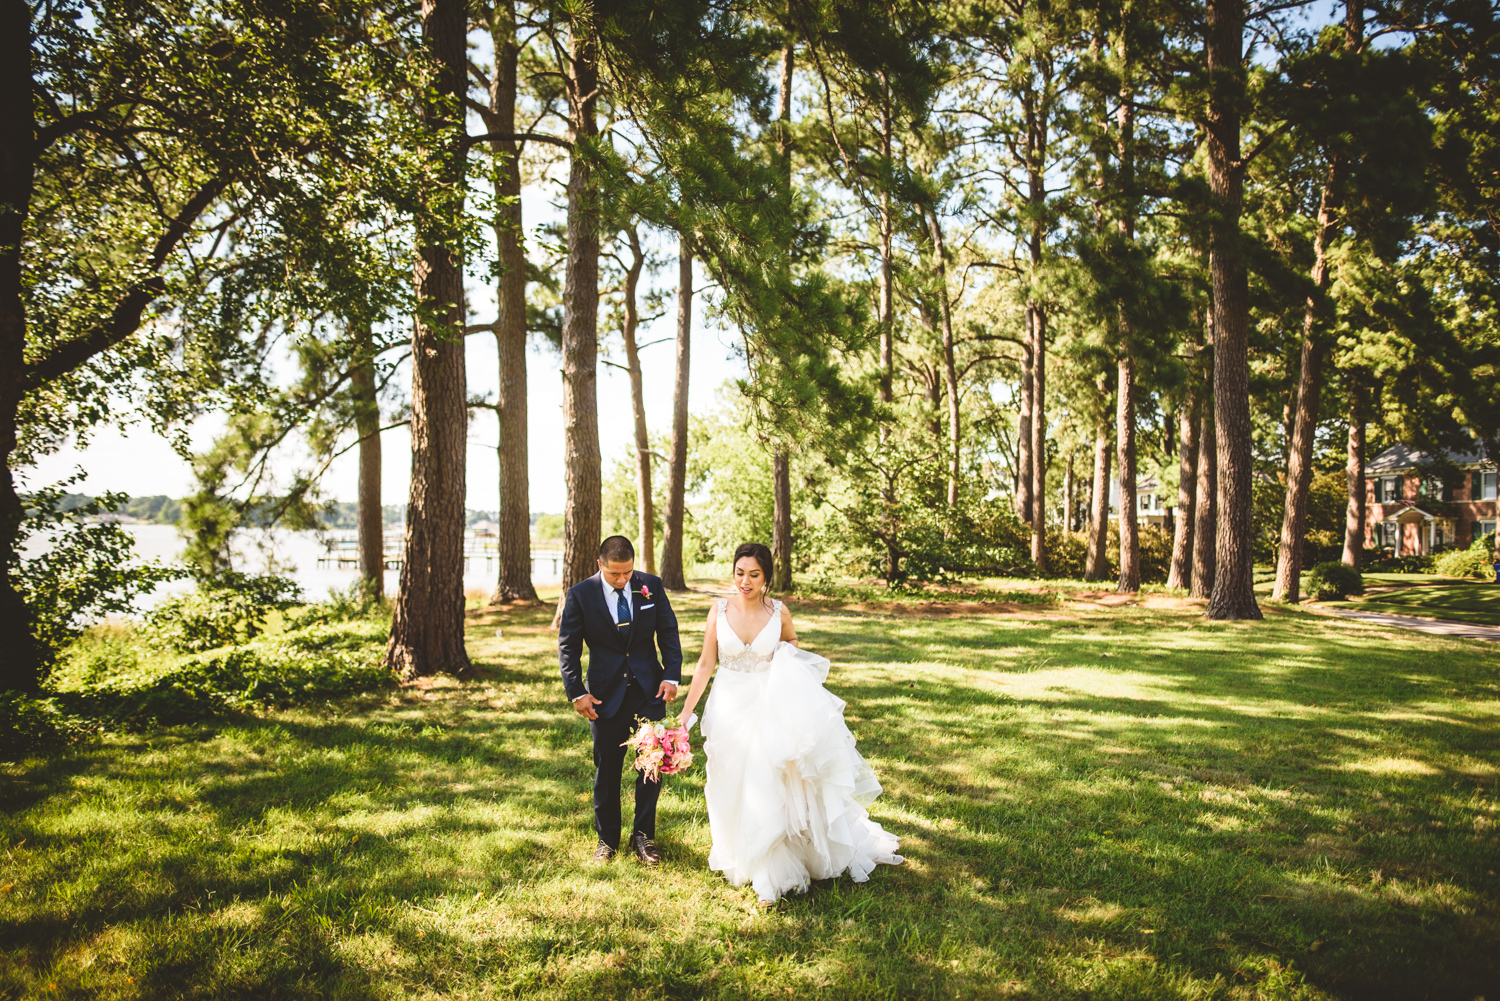 024 bride and groom walk among the trees after getting married.jpg